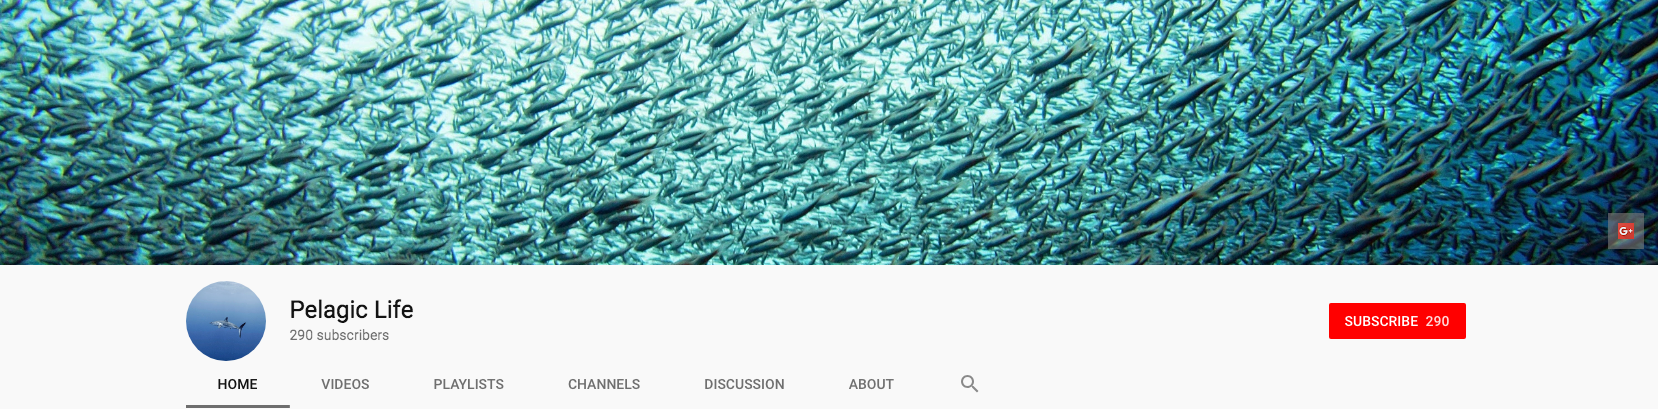 YouTube banner for Pelagic Life channel.